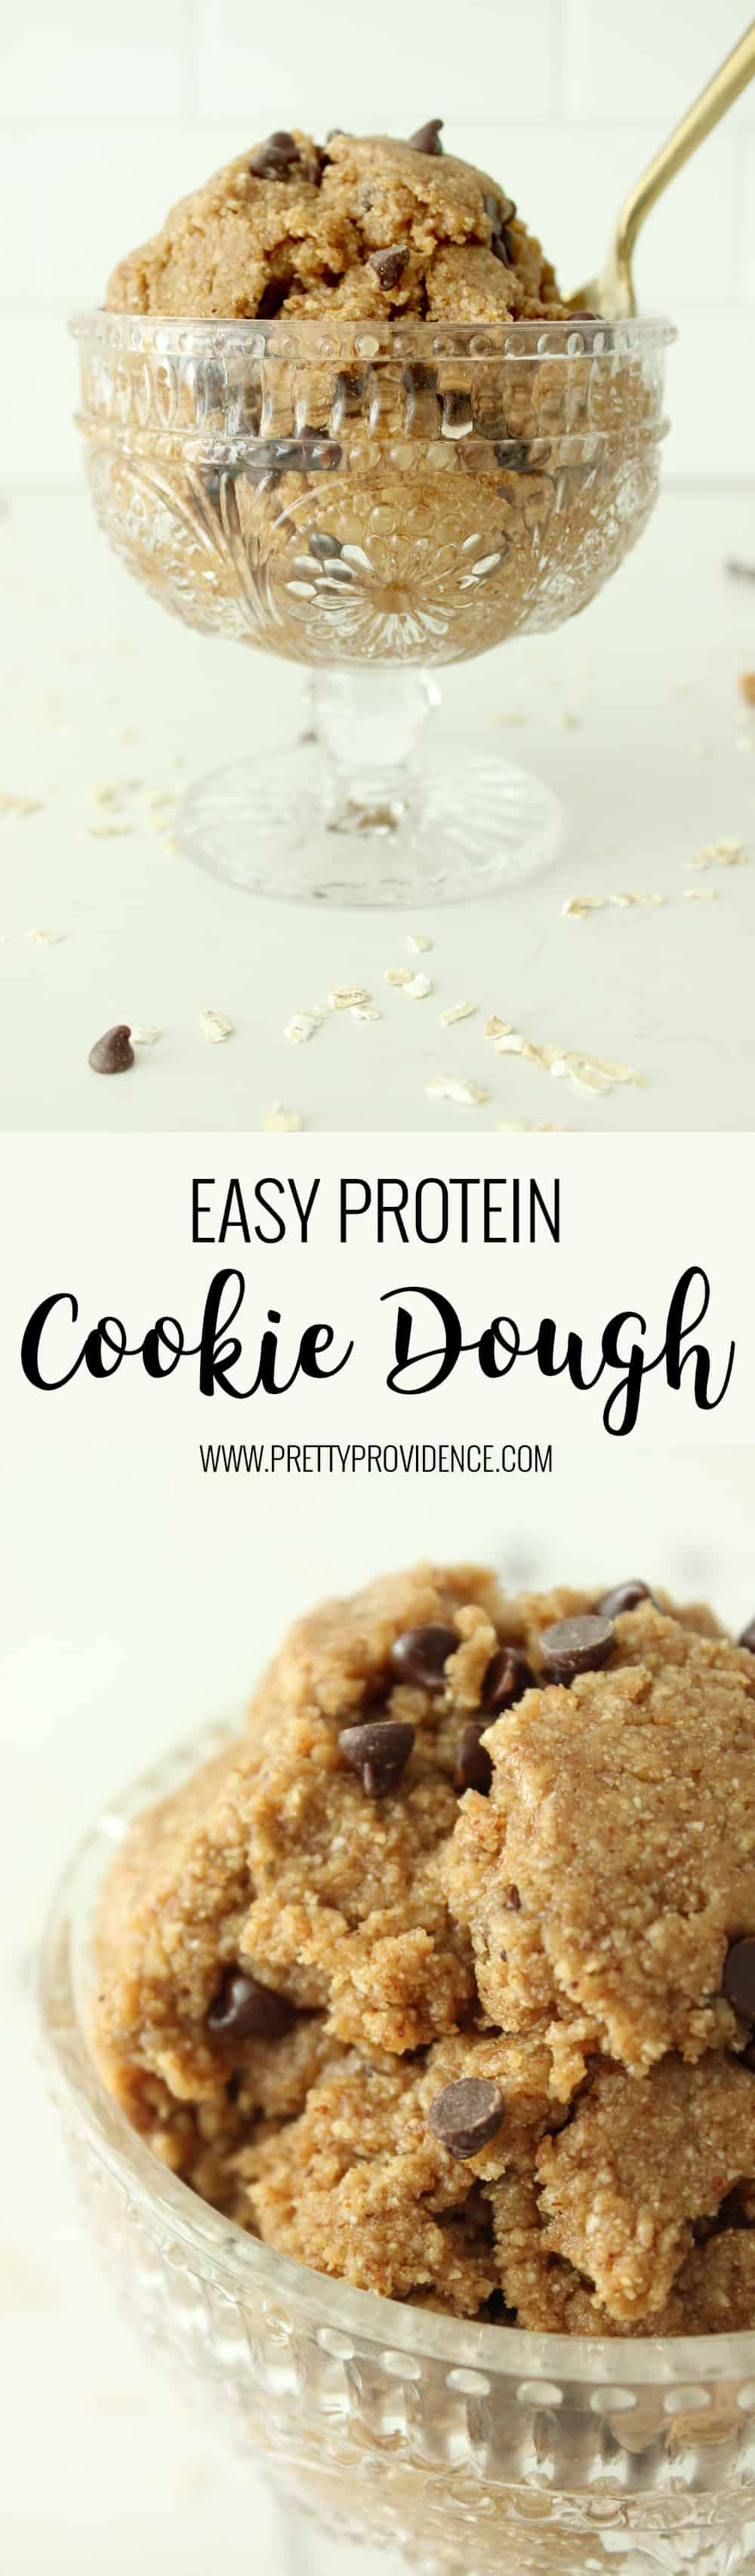 If you need a healthy treat fix this easy protein cookie dough is amazing.. and totally guilt free!